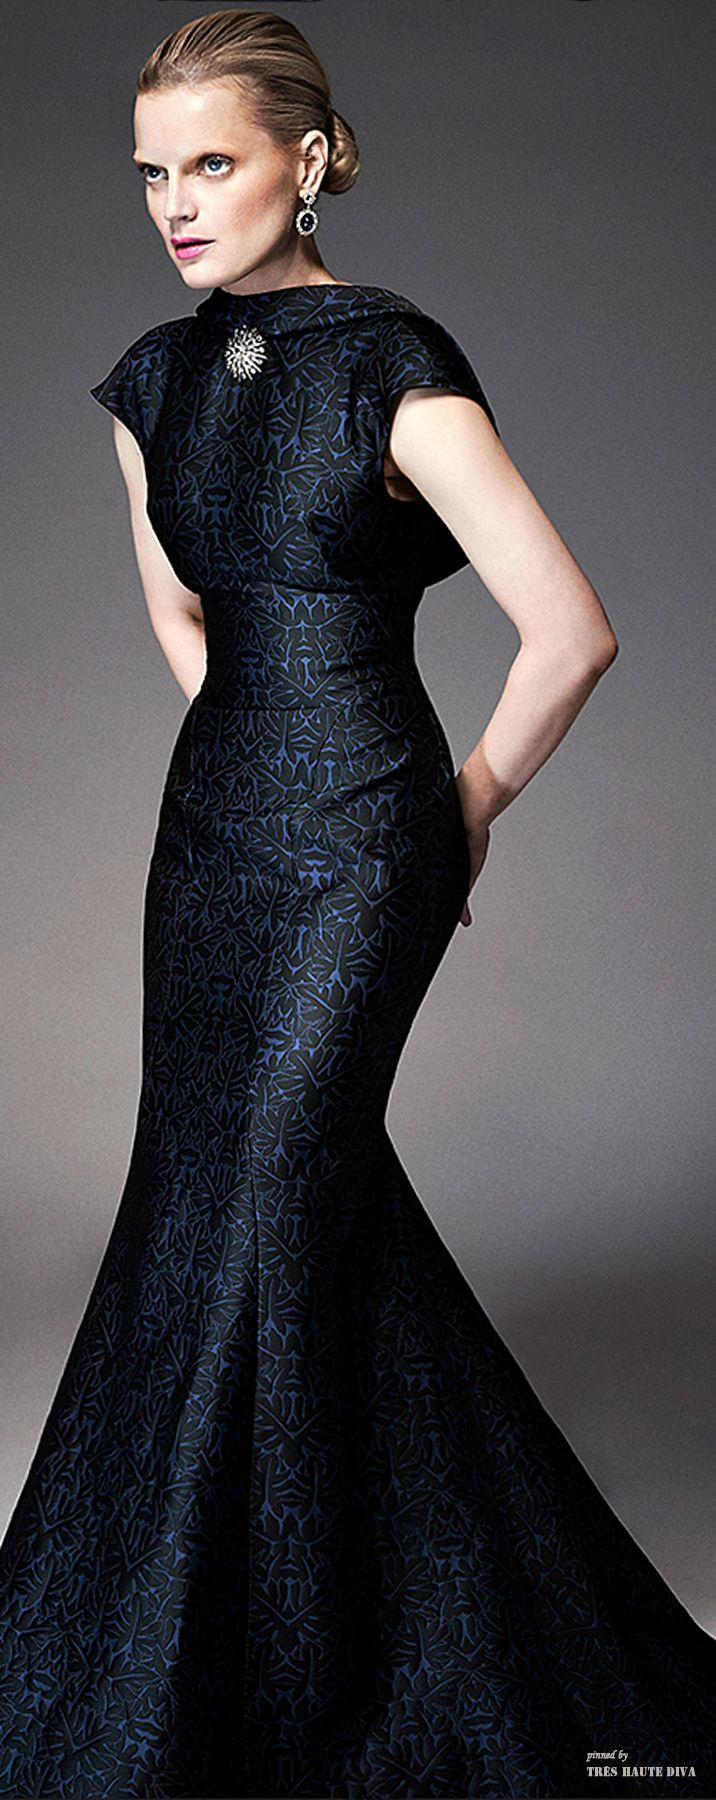 I love this look.  It's so stately and elegant.  Zac Posen Resort 2015 via @TresHaute. #ZacPosen #Resort2015